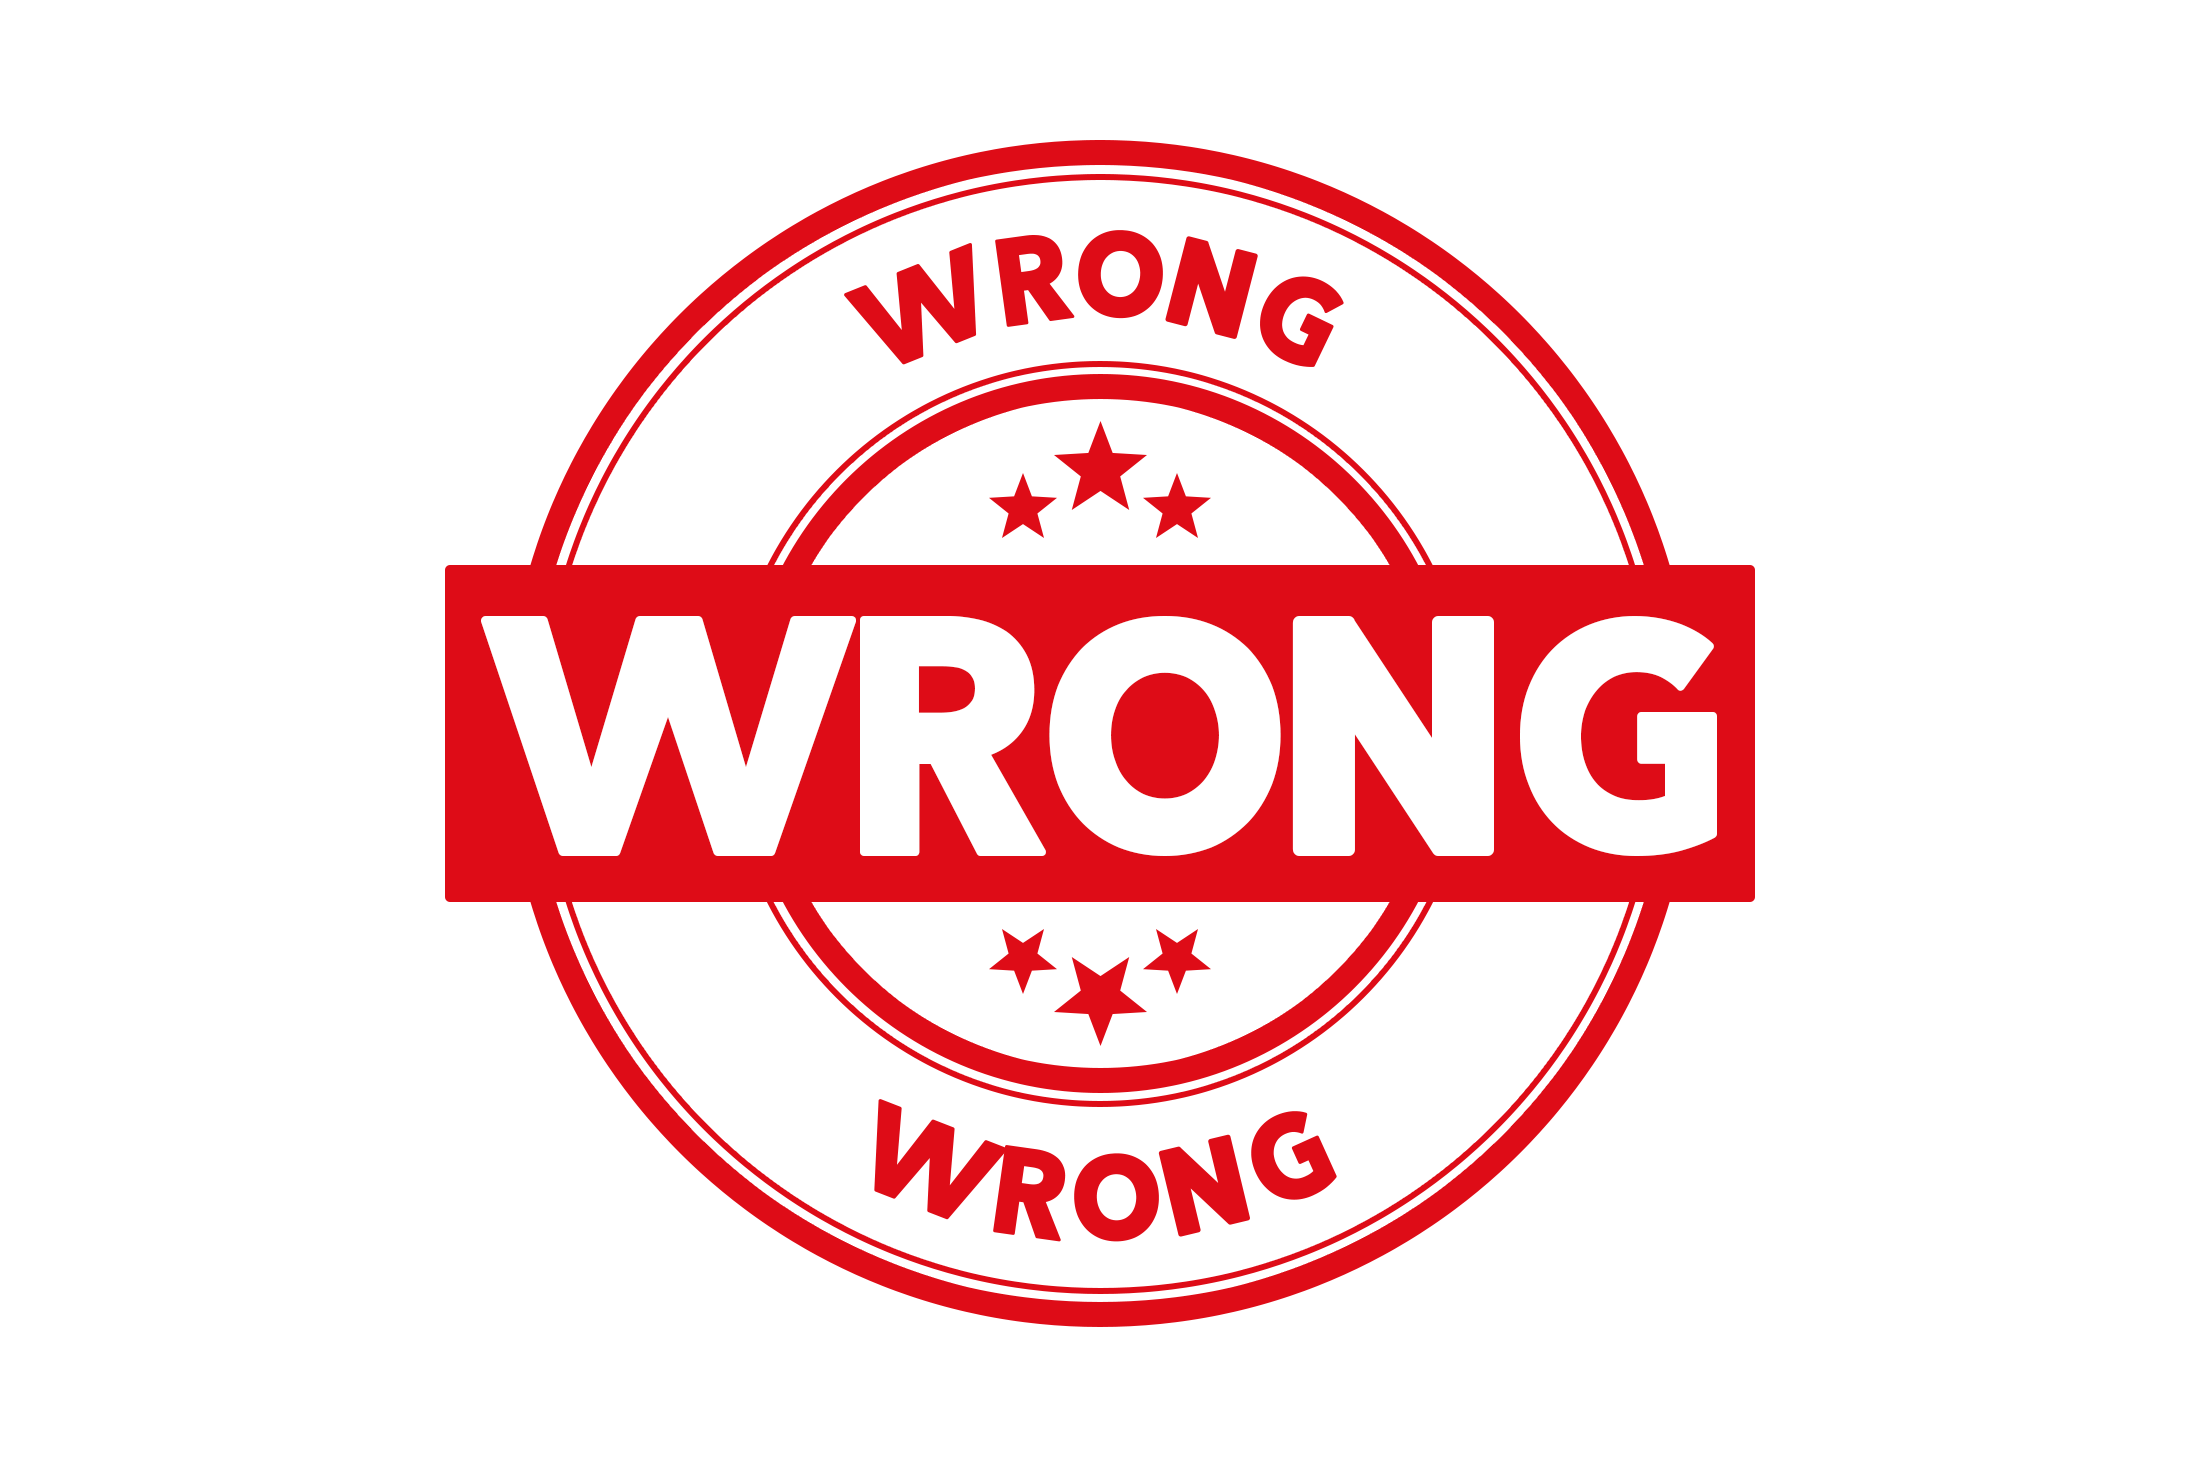 Round wrong stamp PSD